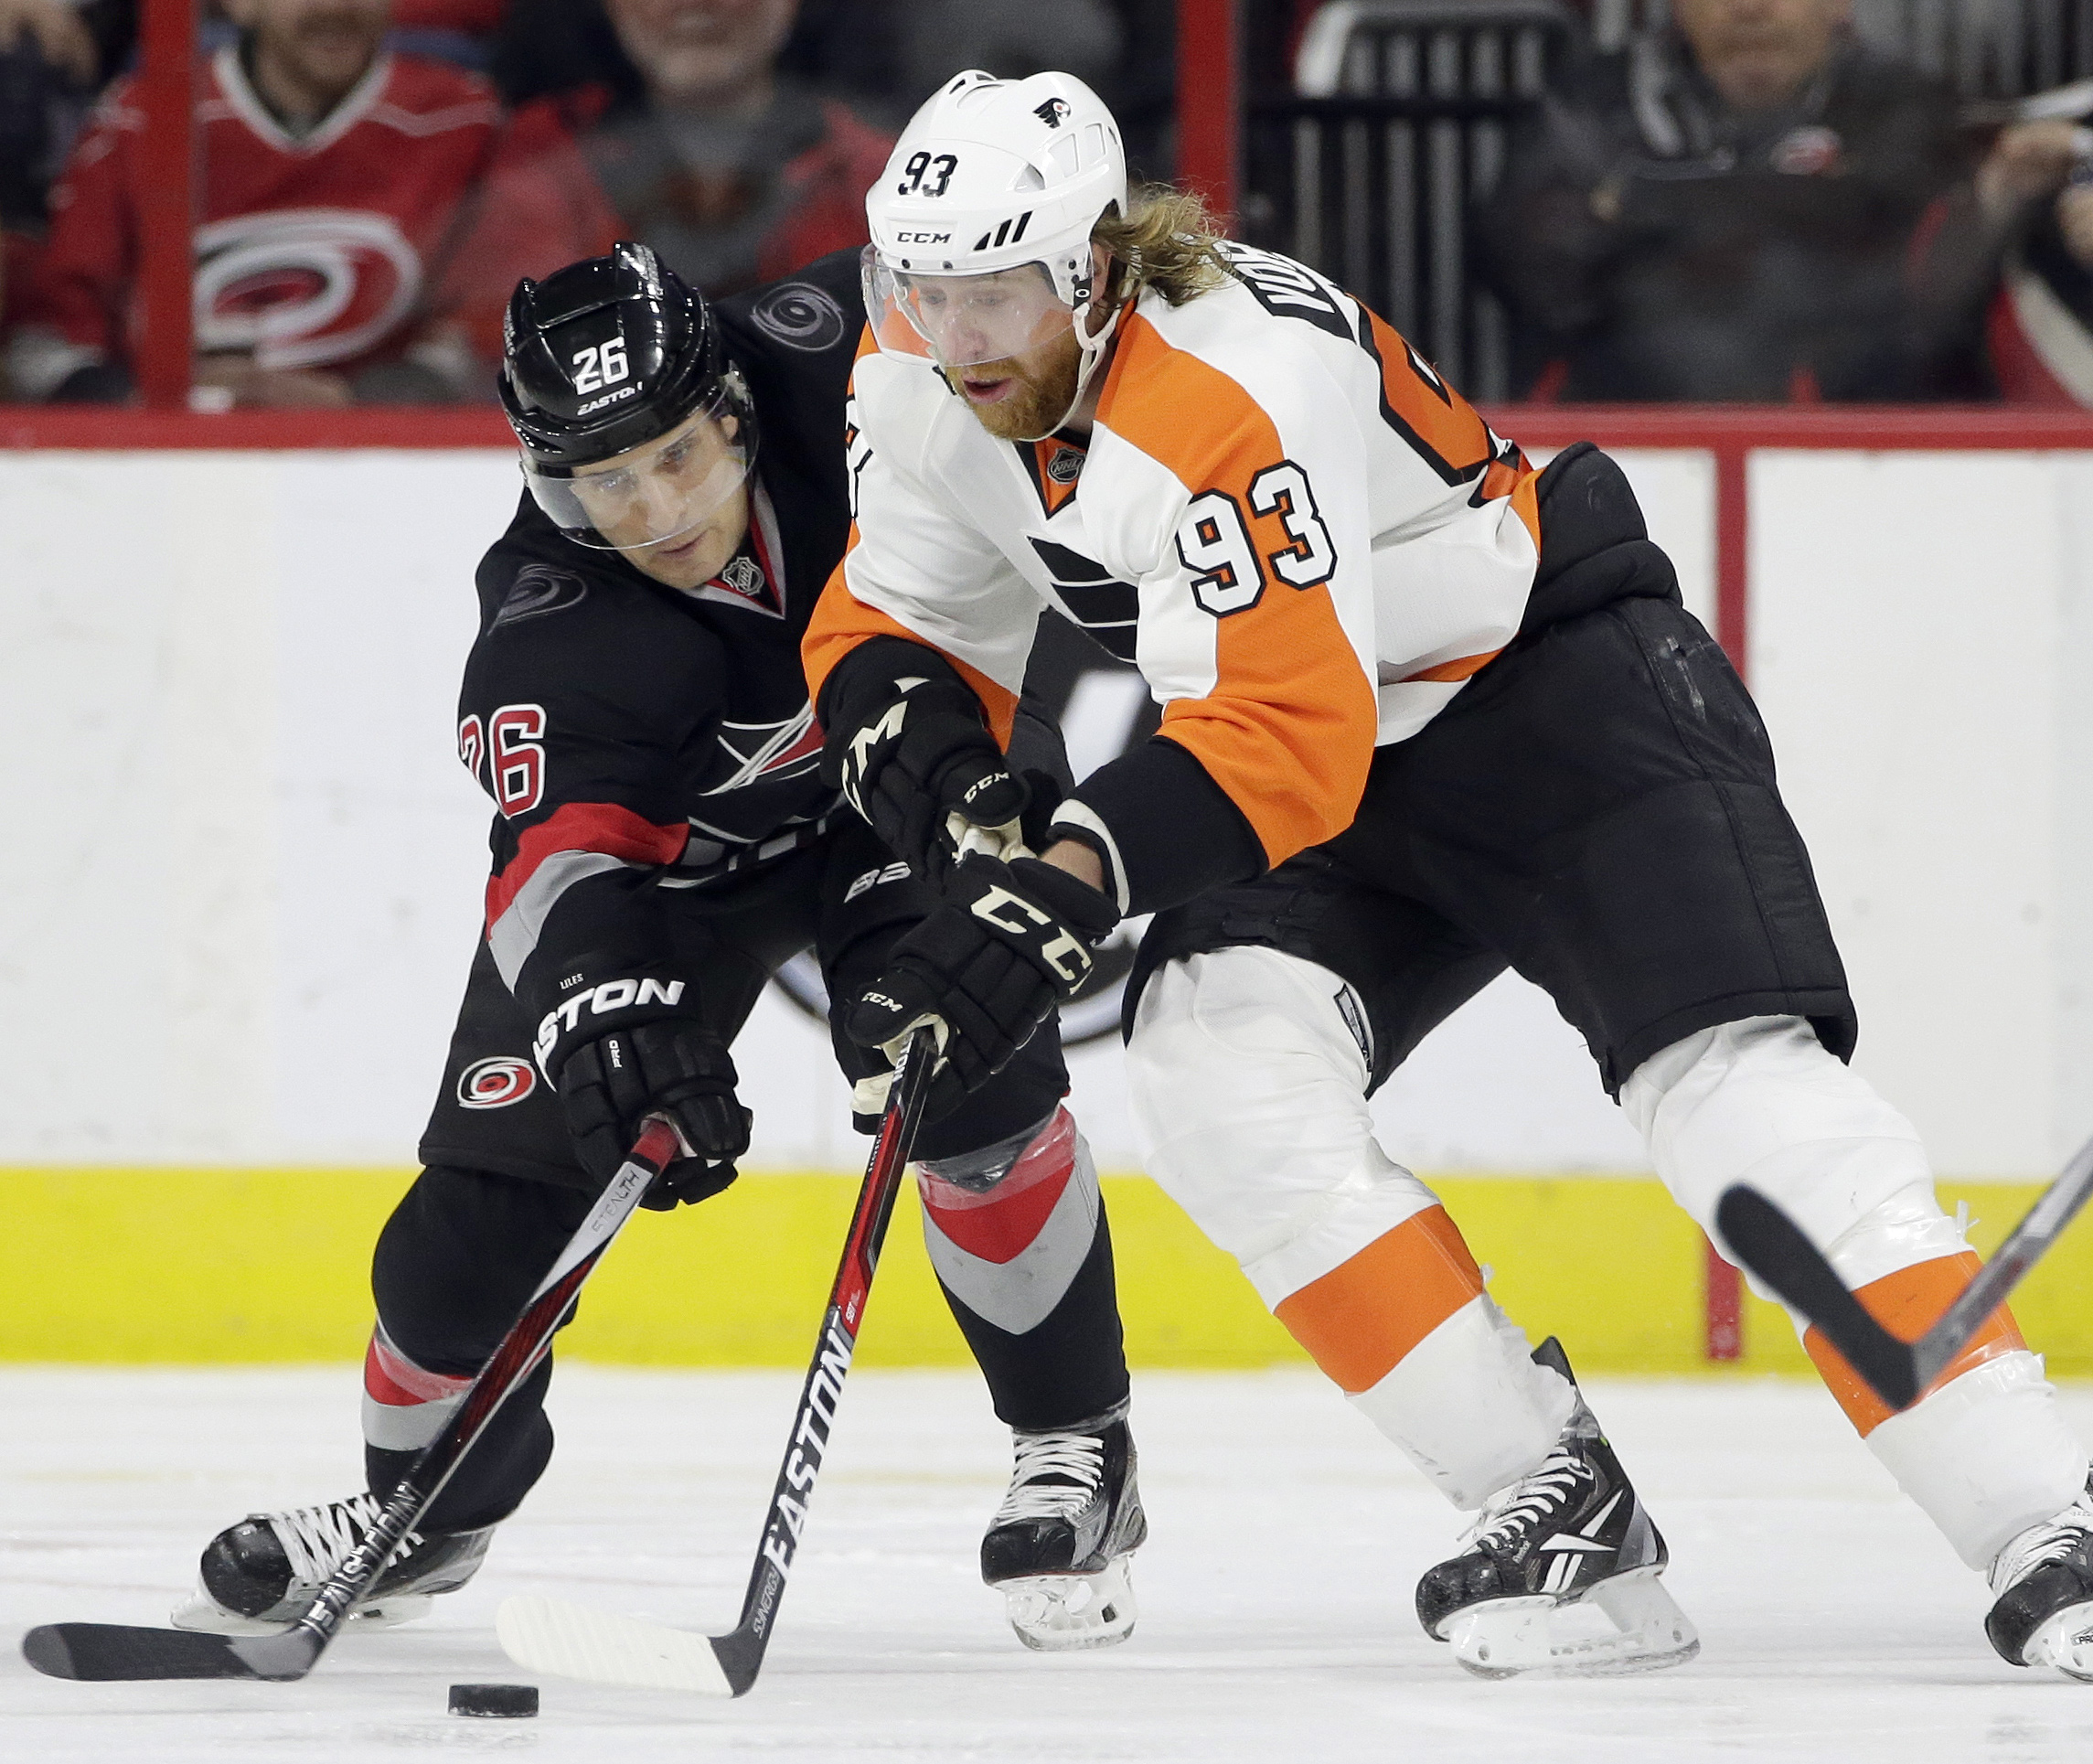 Carolina Hurricanes' John-Michael Liles (26) and Philadelphia Flyers' Jakub Voracek (93), of the Czech Republic, chase the puck during the second period of an NHL hockey game in Raleigh, N.C., Tuesday, Feb. 23, 2016. (AP Photo/Gerry Broome)